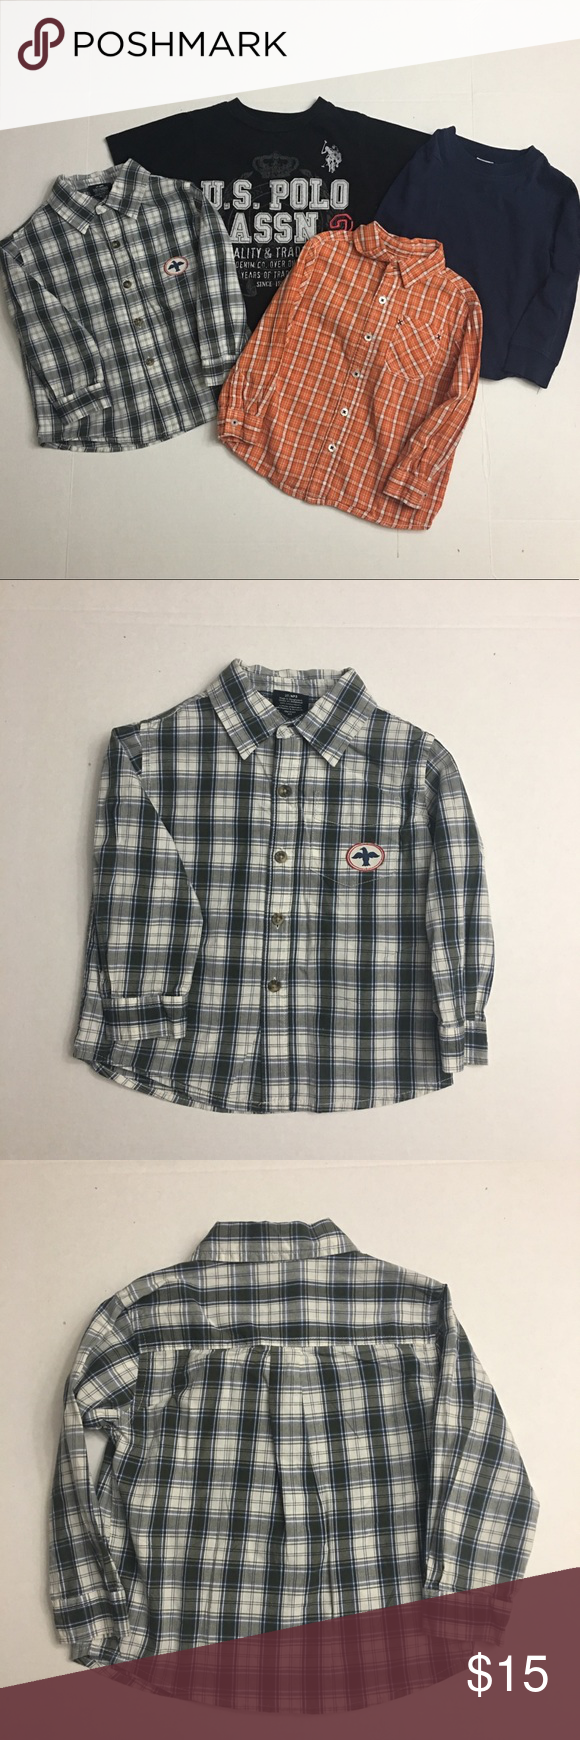 3t Top Lot All Size 3t Faded Glory Gray Blue White Dress Shirt Cherokee Orange And White Black Shirt Dress Black Short Sleeve Shirt Blue Long Sleeve Shirt